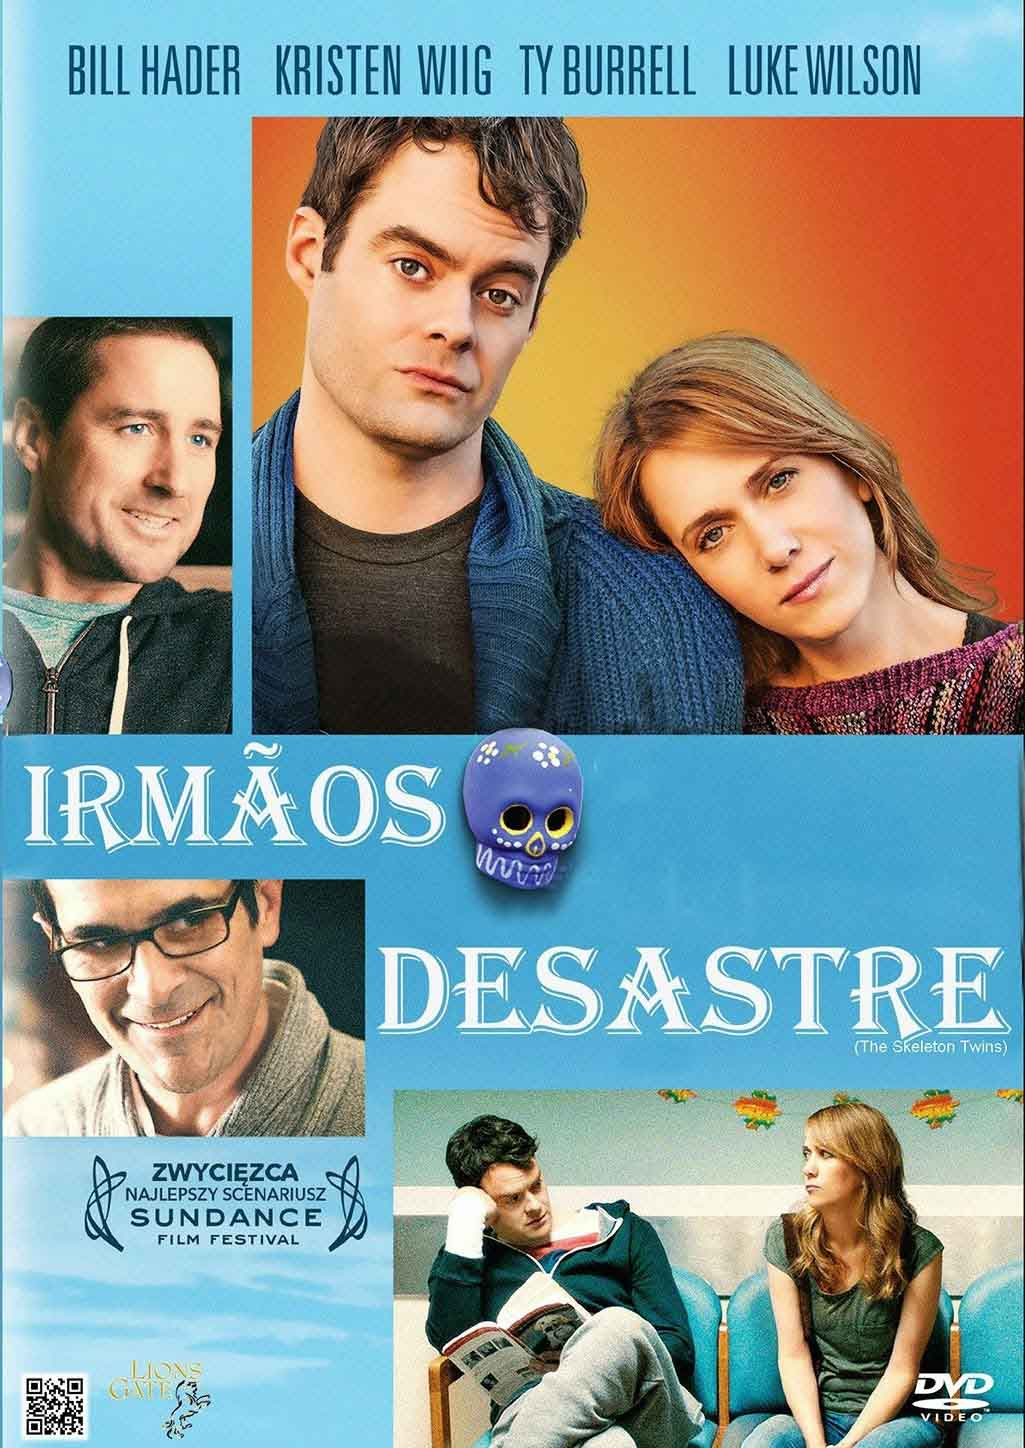 Irmãos Desastre Torrent - Blu-ray Rip 720p Dual Áudio (2015)